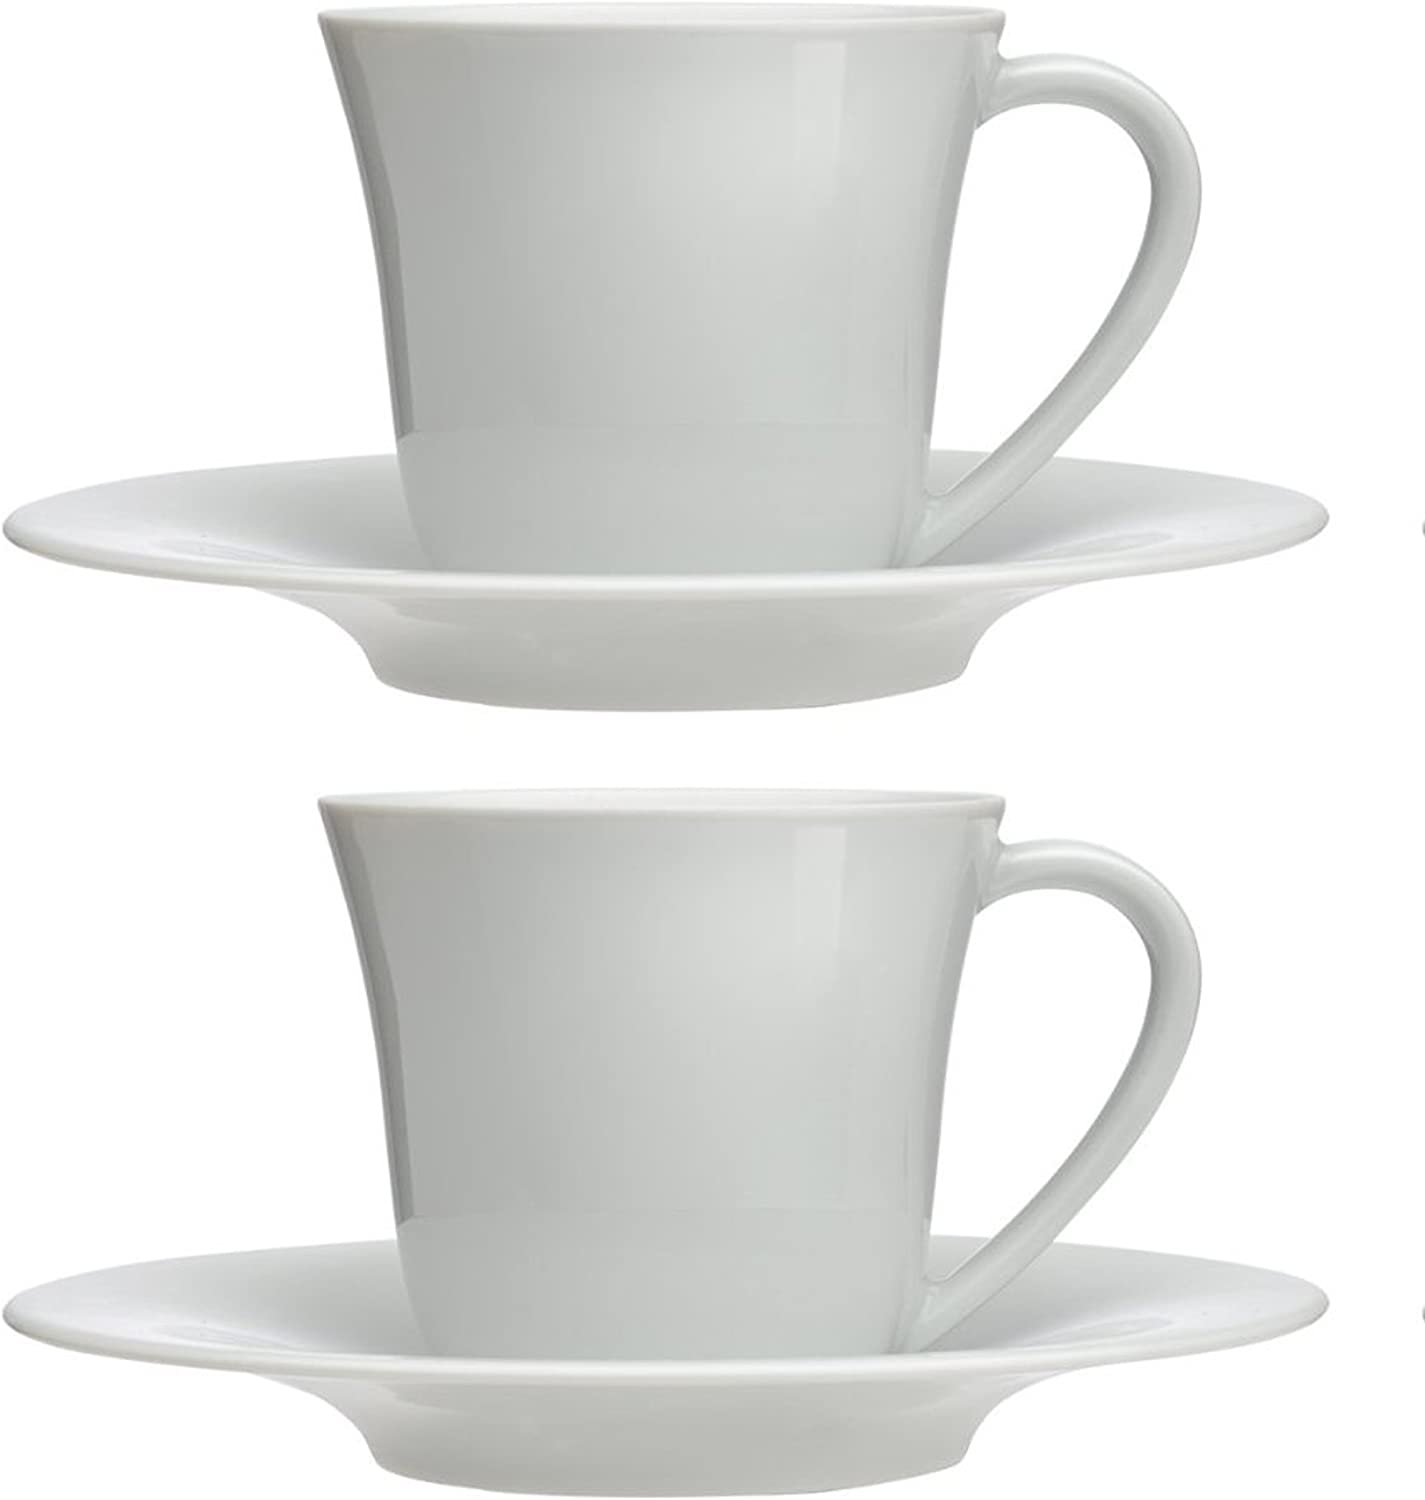 Alessi KU 2 4 6 Porcelain Cups /& Saucer Espresso Coffee Ceramic Gift Boxed Set